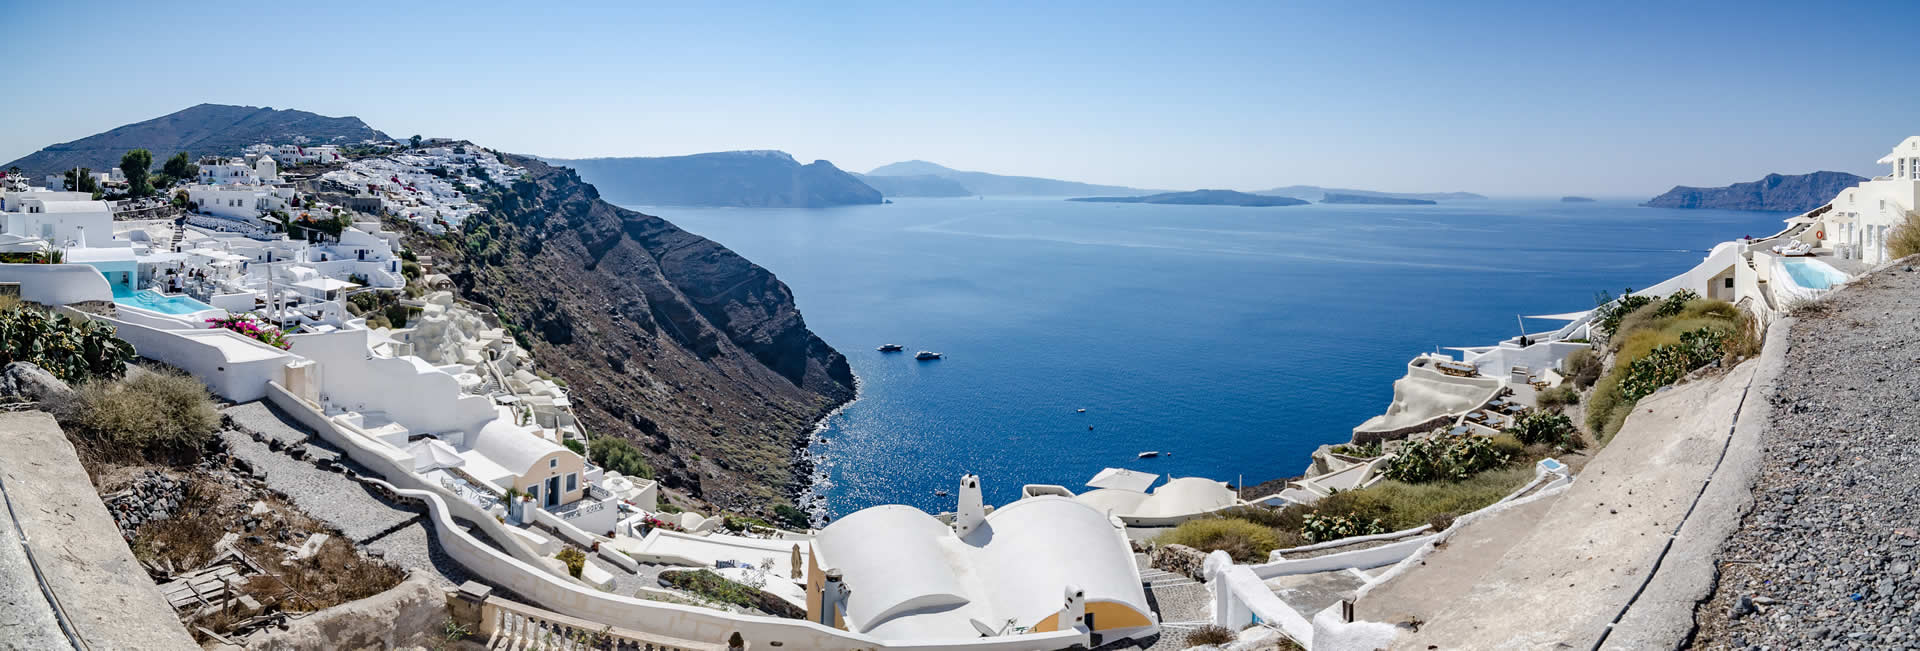 santorini weather temparatures